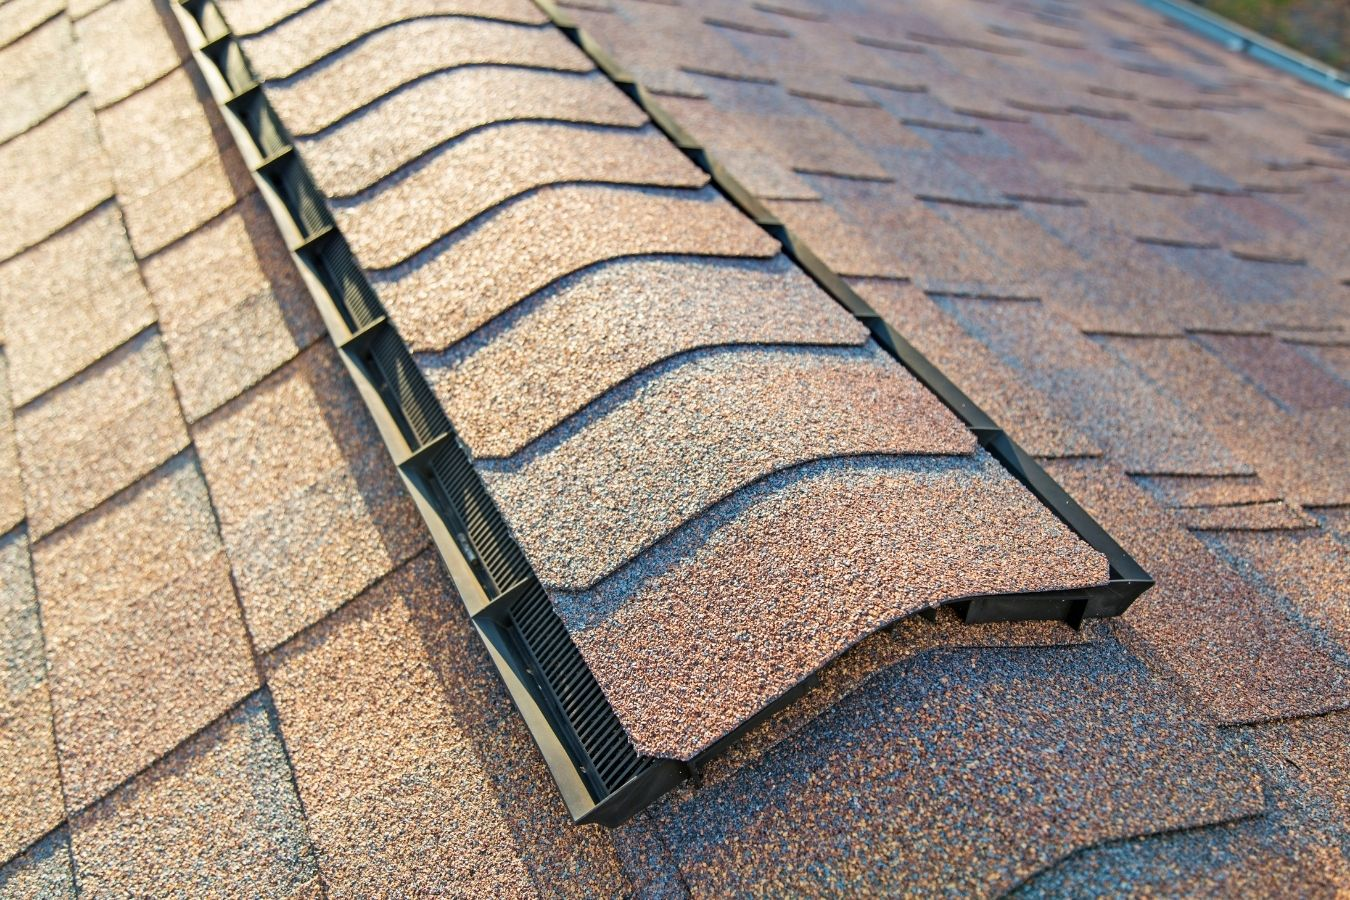 Image of ridge vents installed on a roof